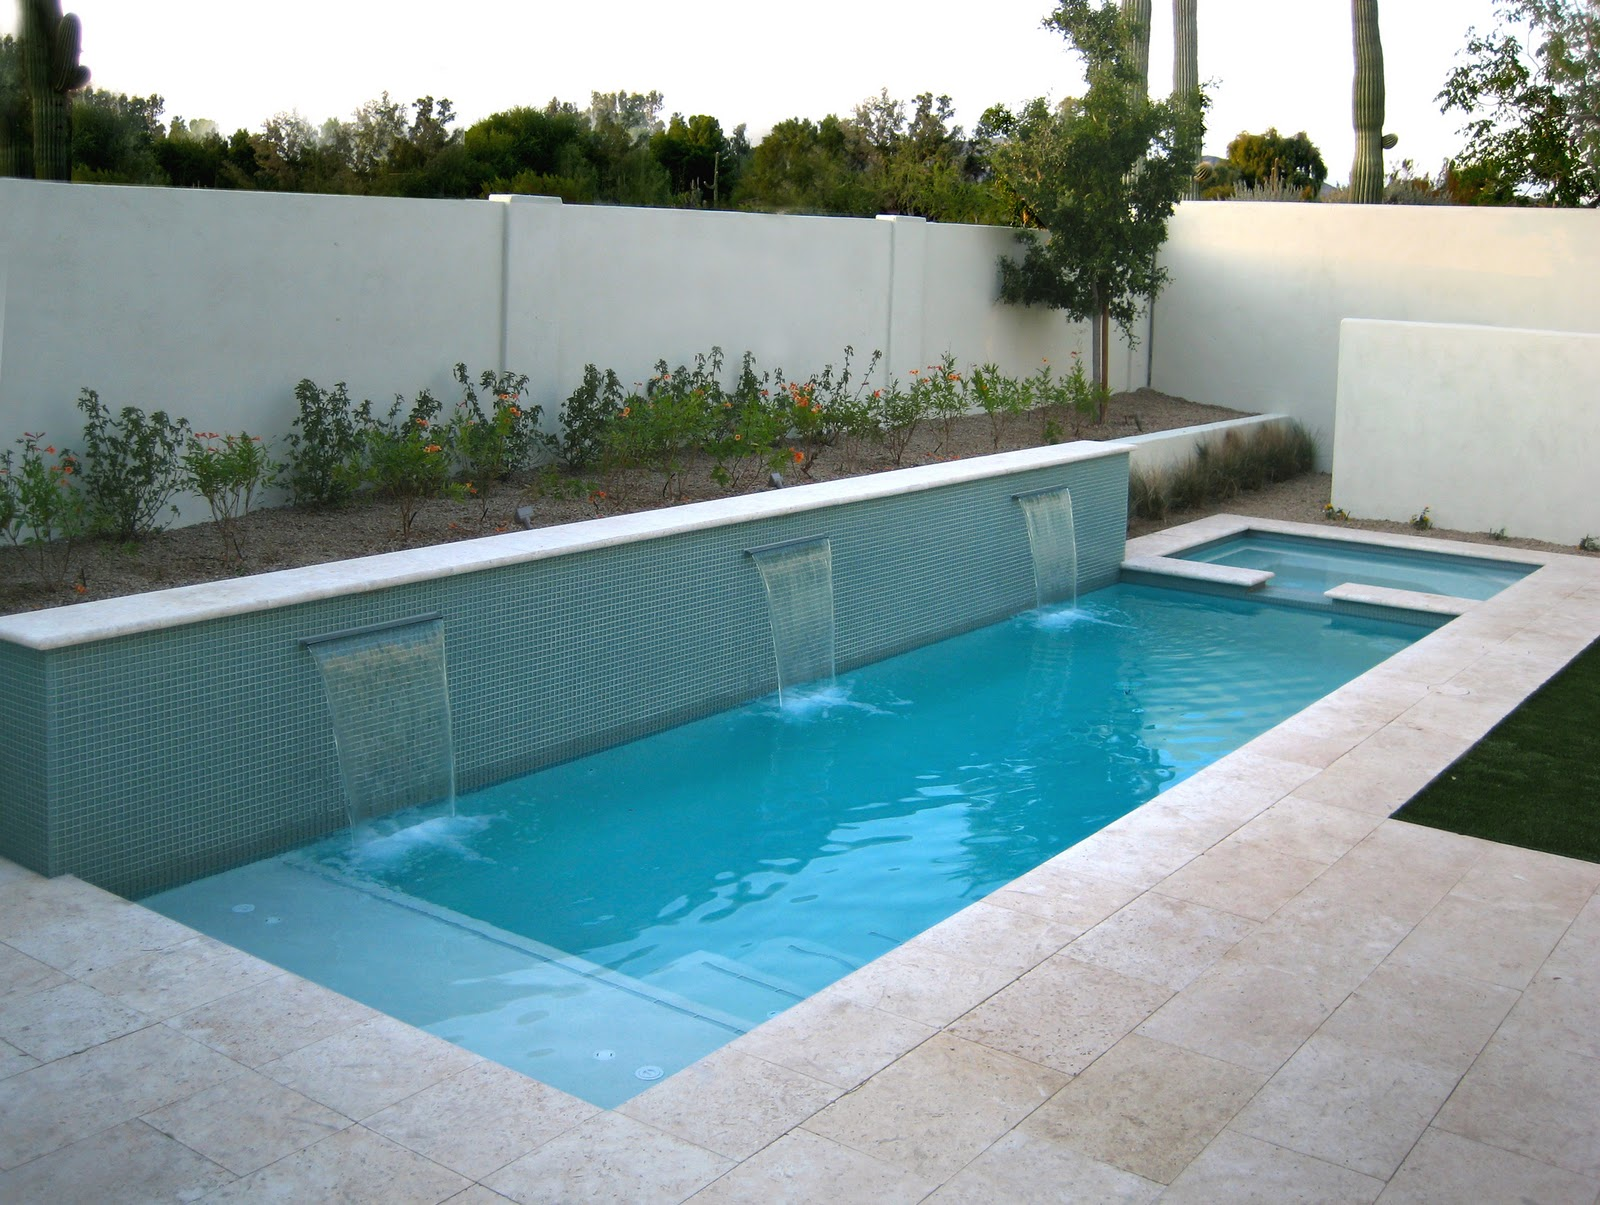 Pool ideas for small backyard